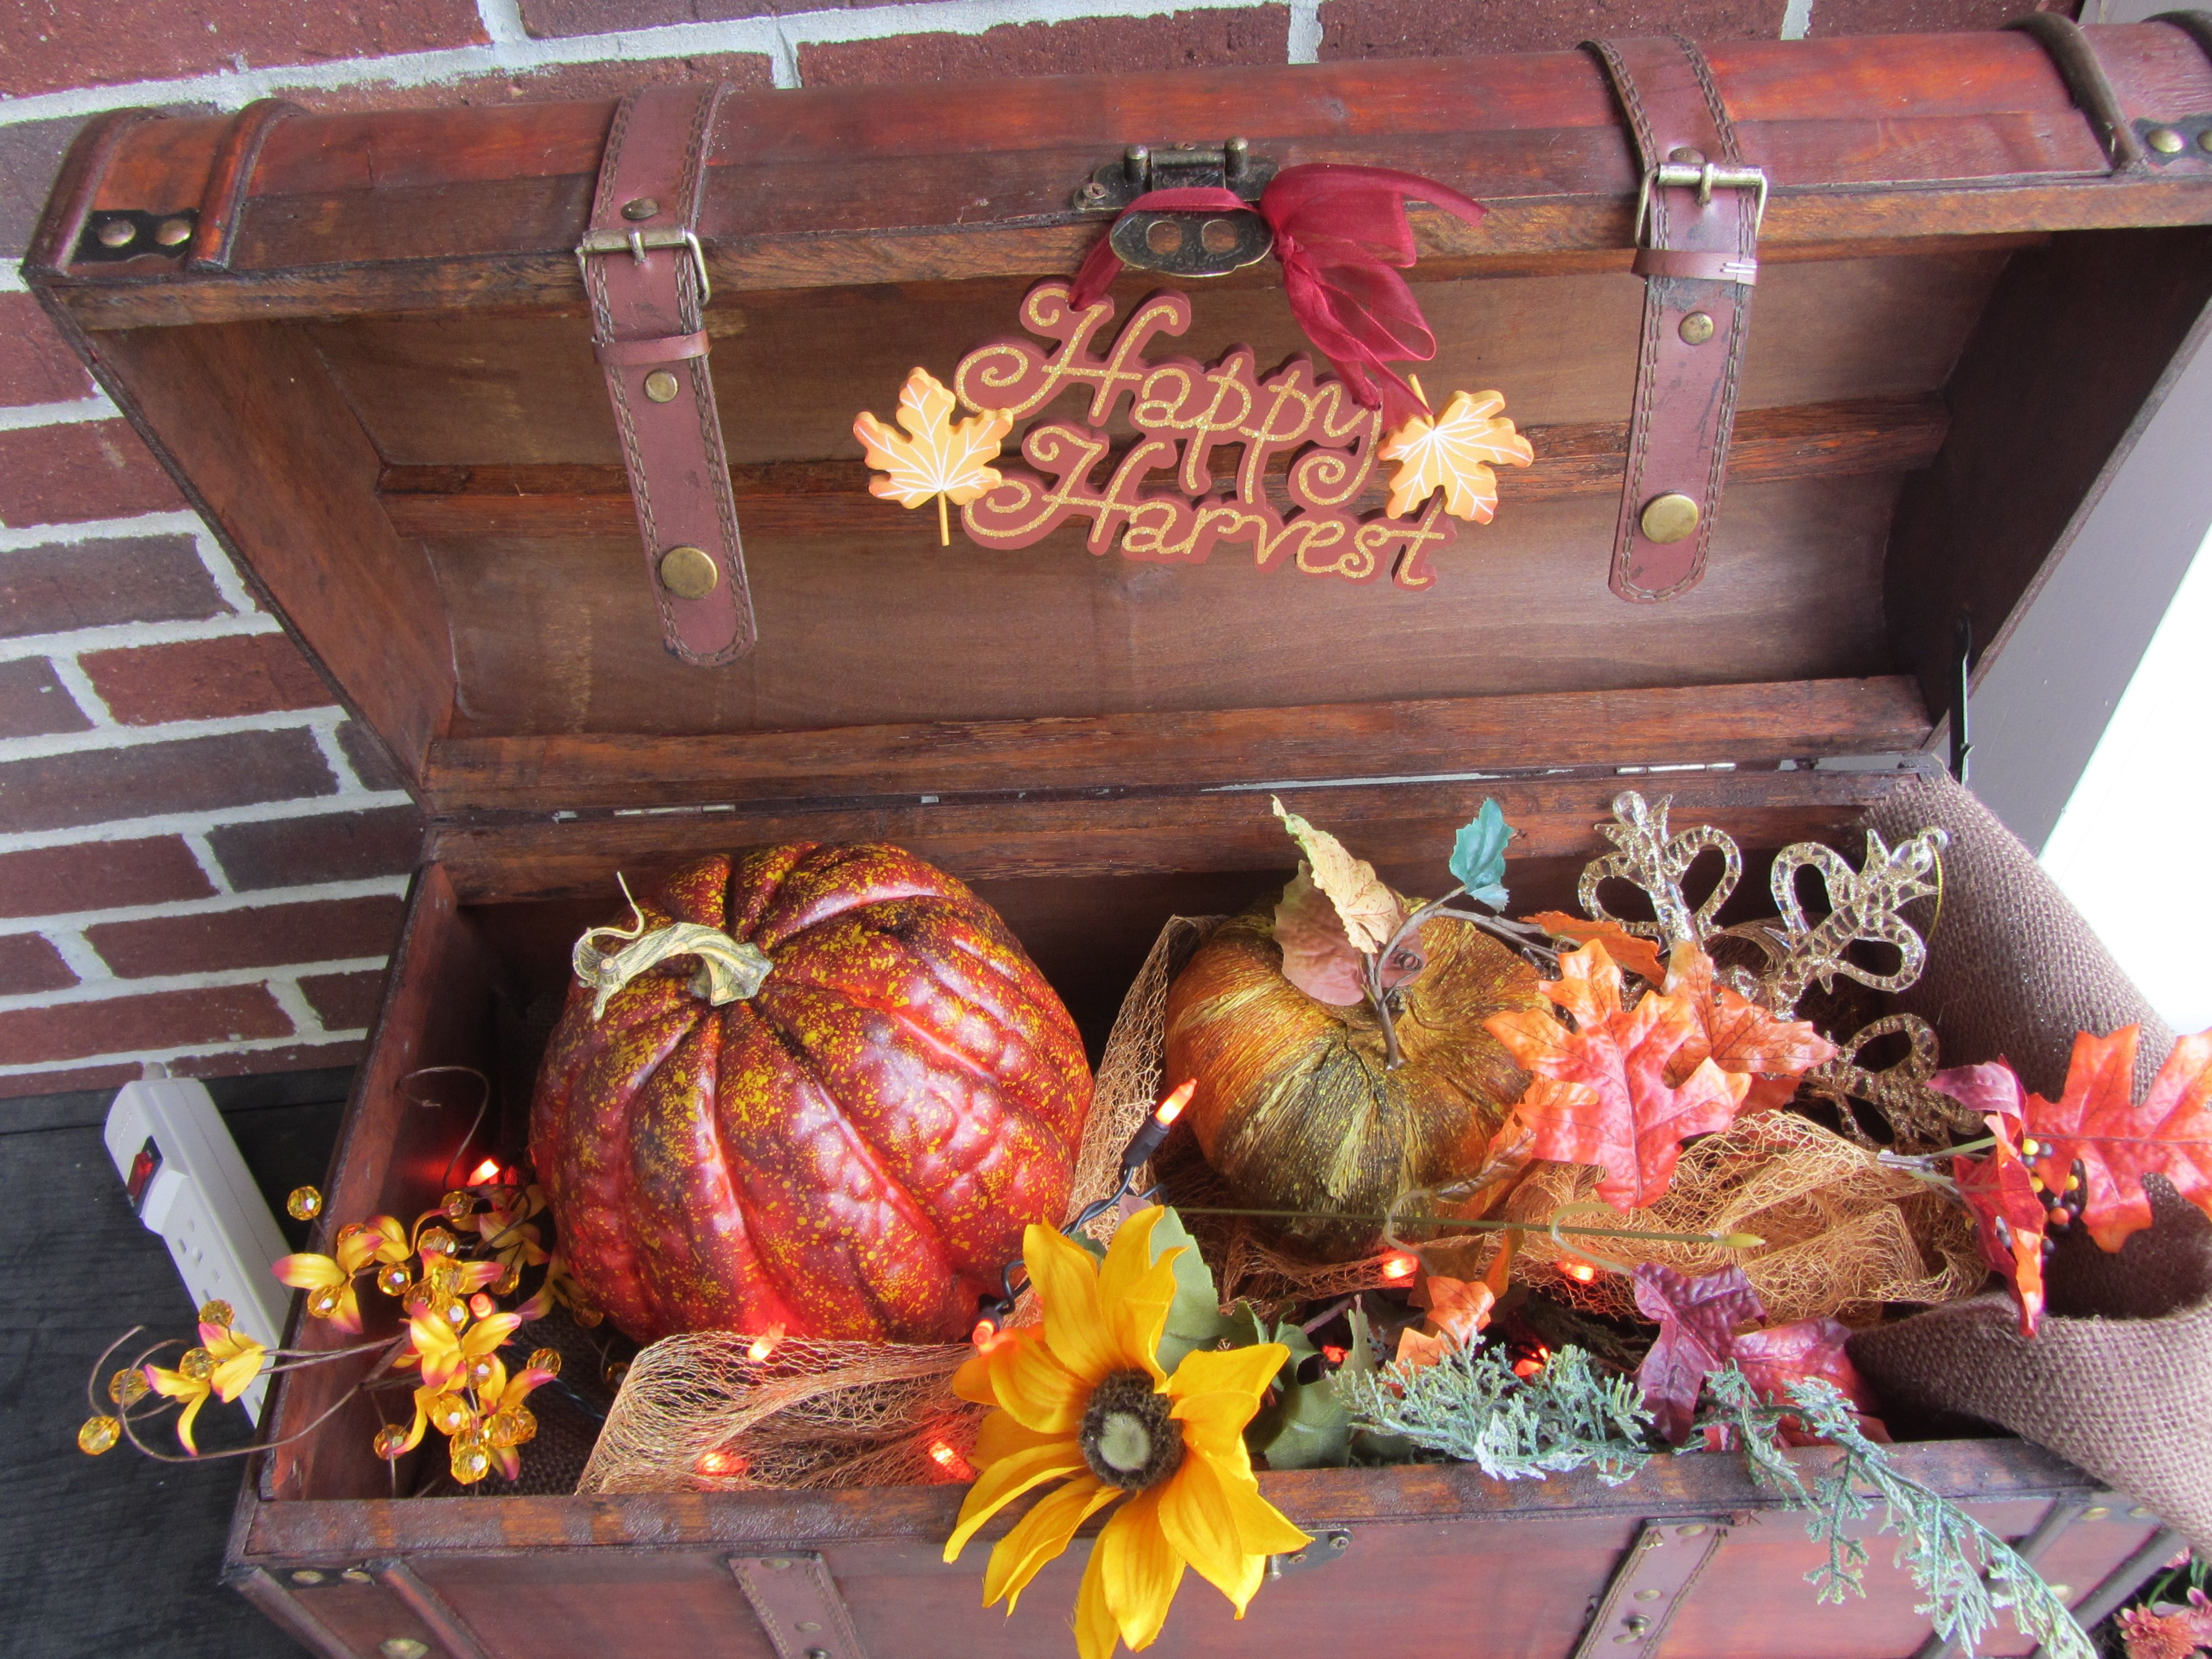 I created this trunk and have also made a kit to switch the theme from Christmas to Thanksgiving, $75.00 on Etsy, store name Dragonfly Bath & home